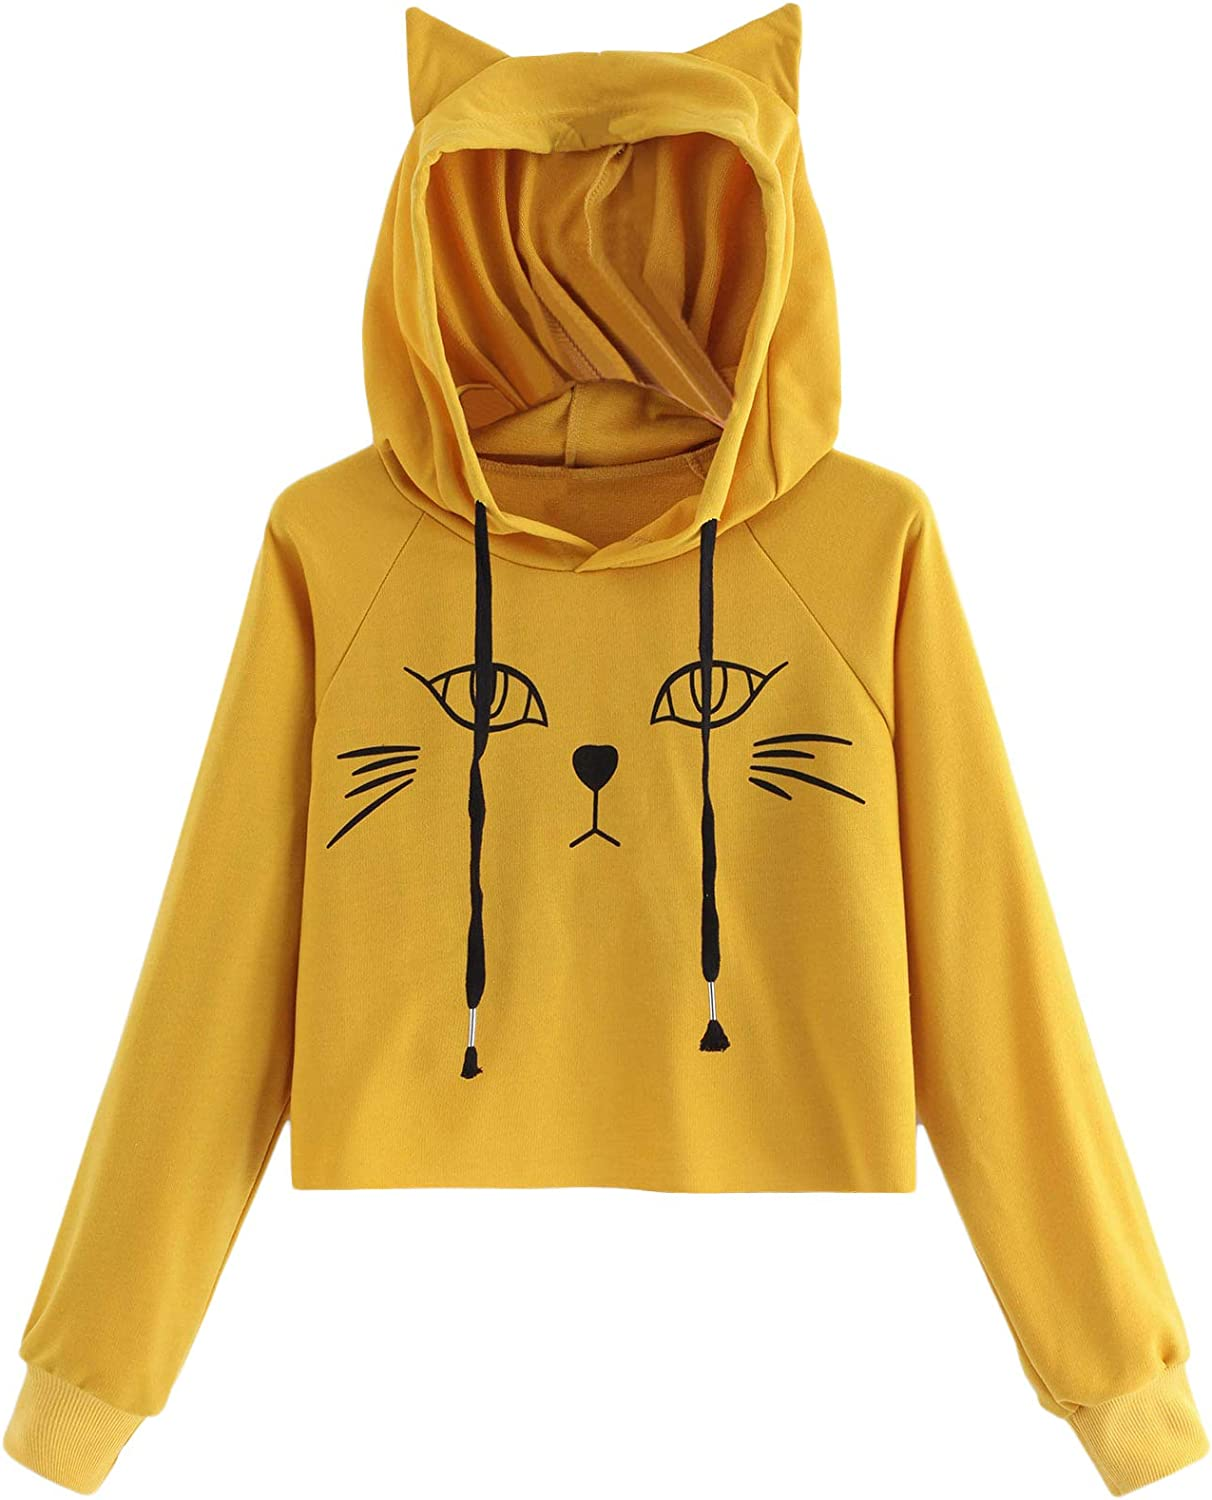 SweatyRocks Women's Long Sleeve Hoodie Crop Top Cat Print Sweatshirt